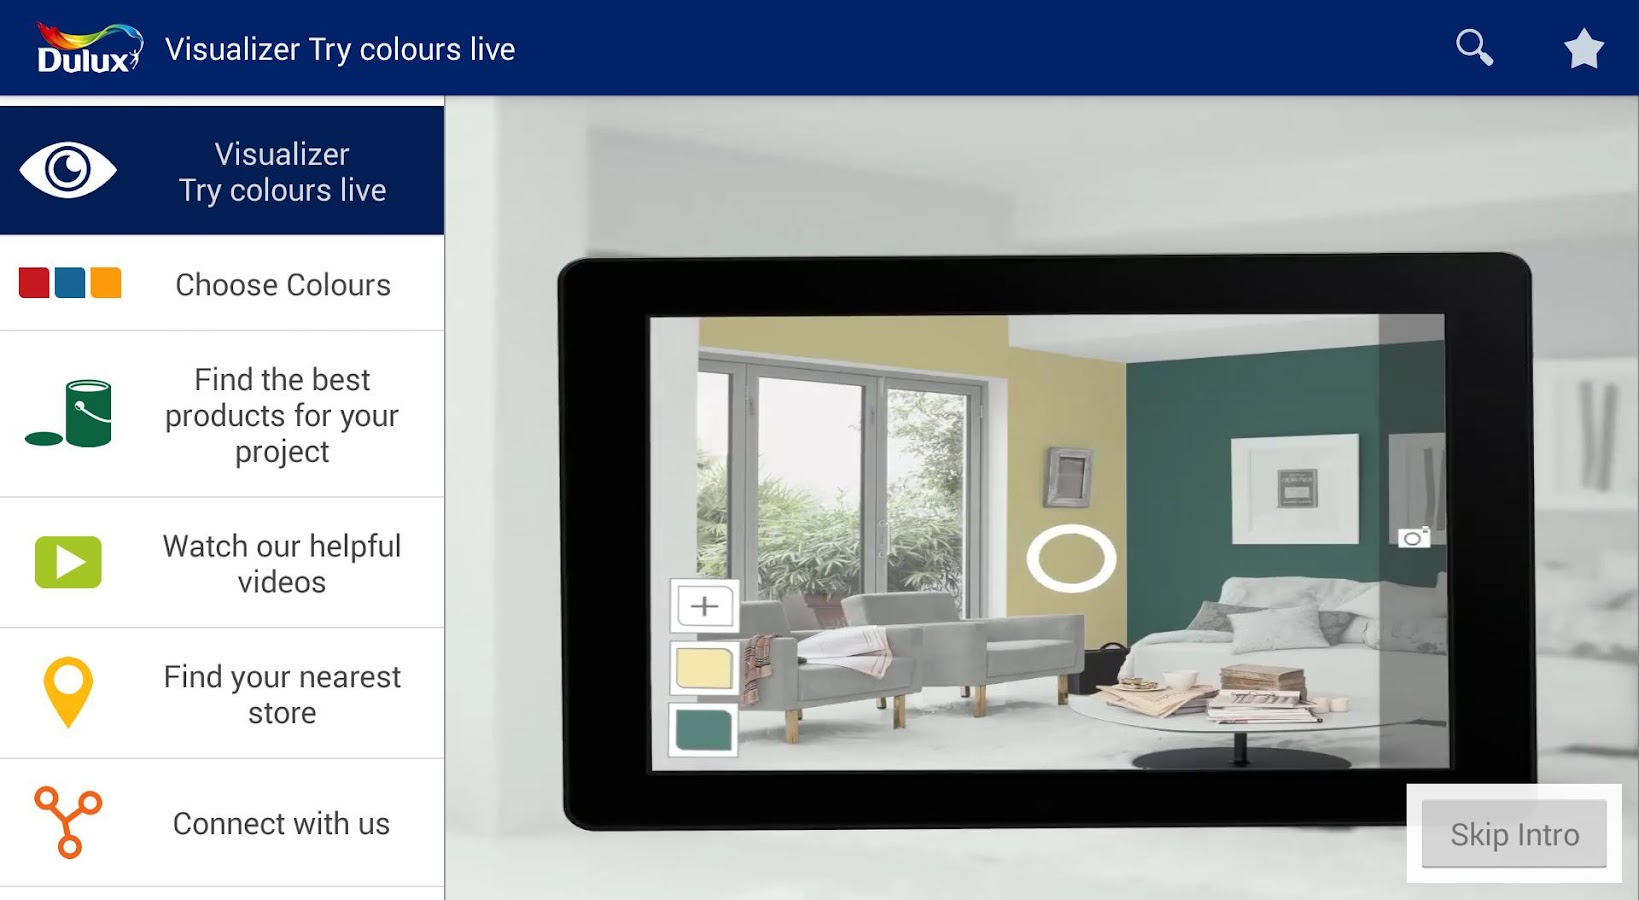 Dulux visualizer hk android apps on google play for App for painting walls